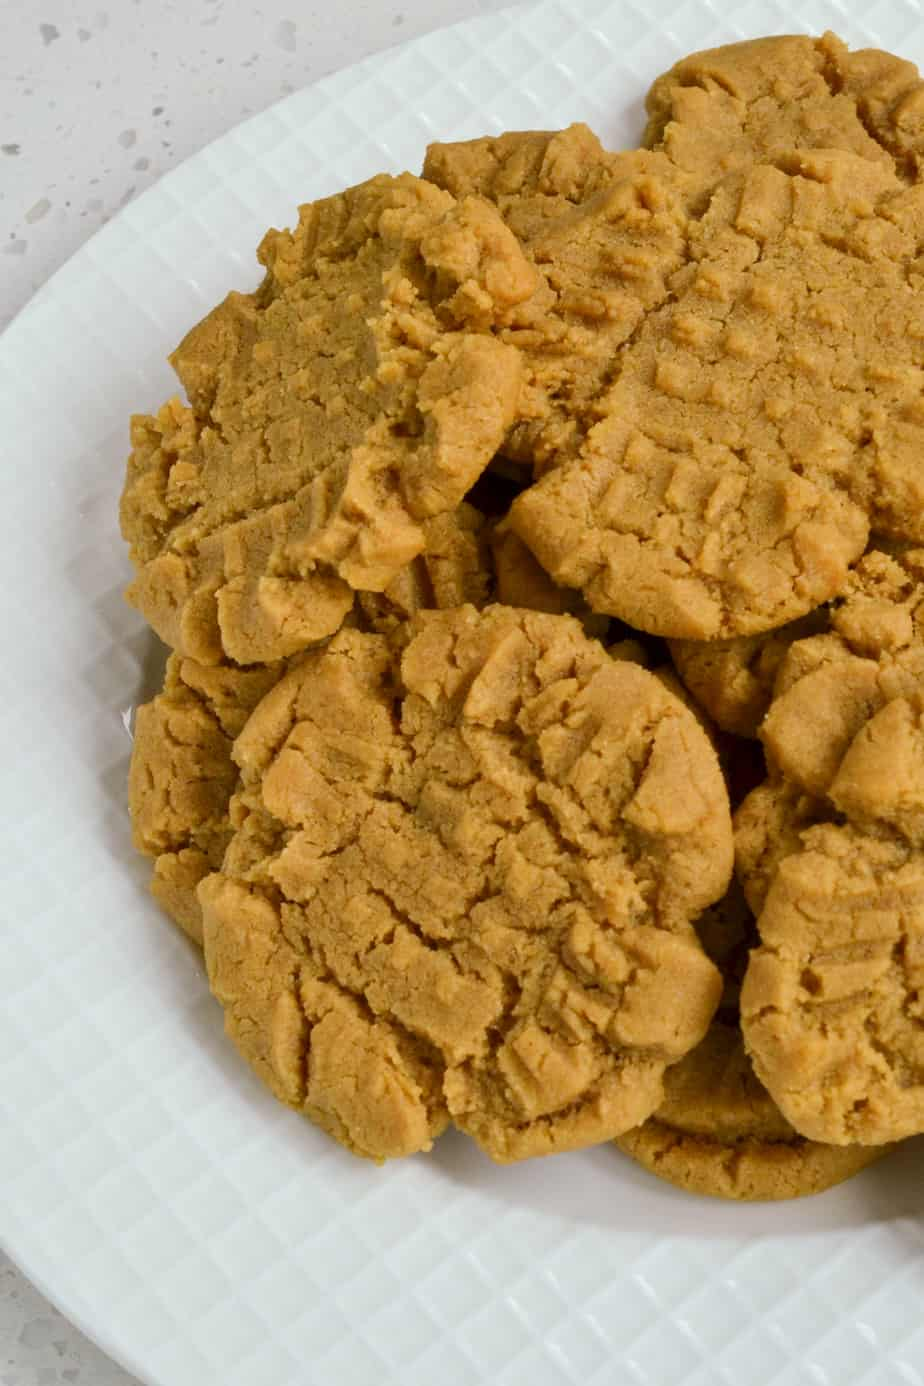 A plate full of peanut butter cookies